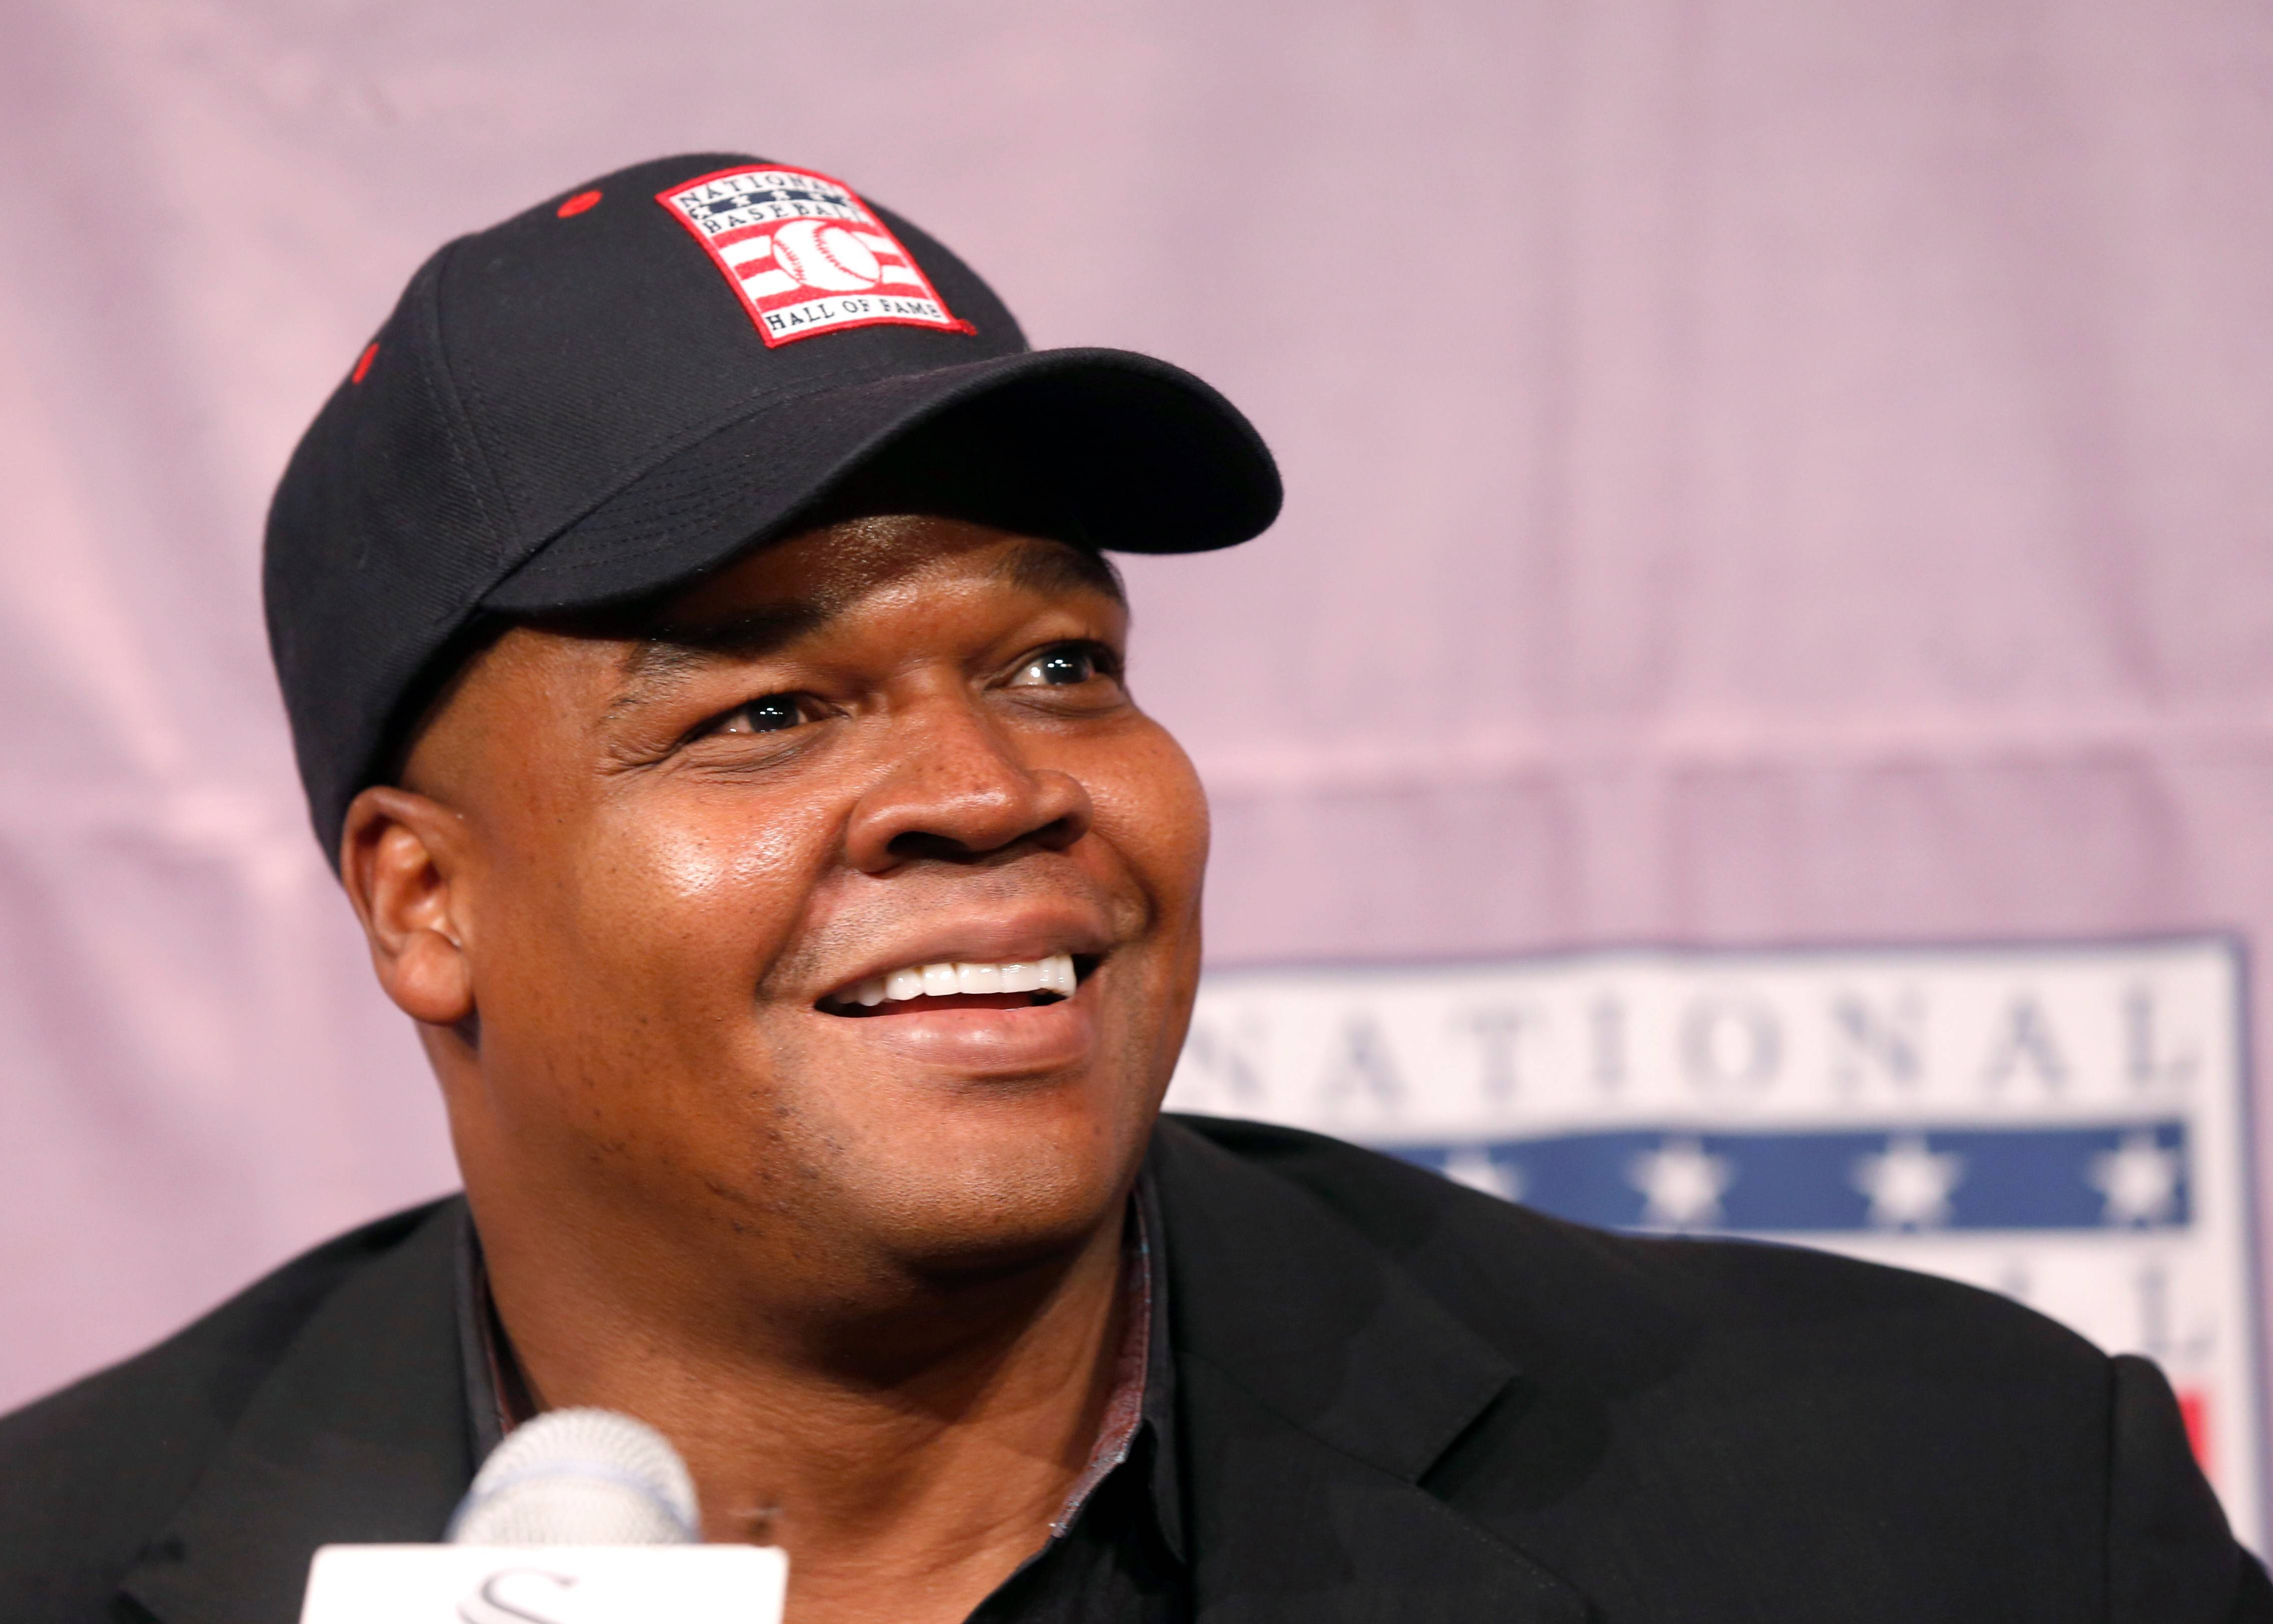 Frank Thomas smiles as he listens to a question during a news conference about his selection into the MLB Baseball Hall Of Fame in January.